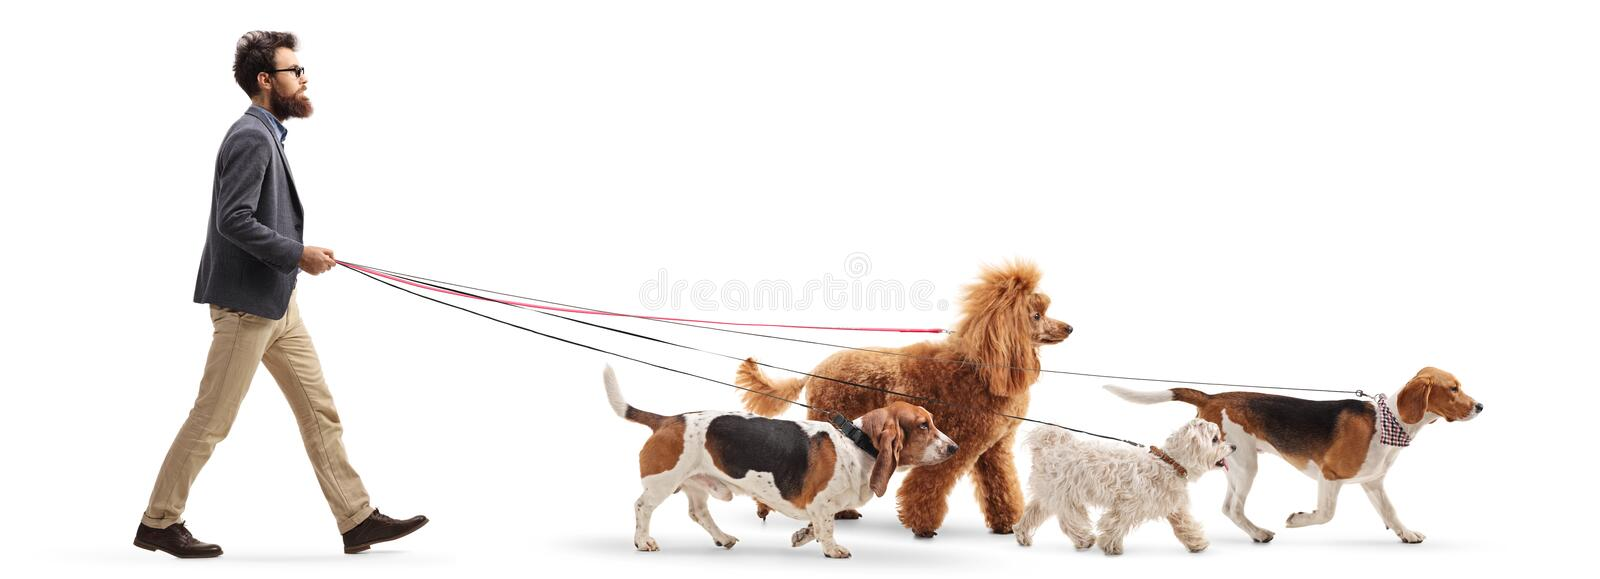 Male dog walker walking four different dogs royalty free stock photography